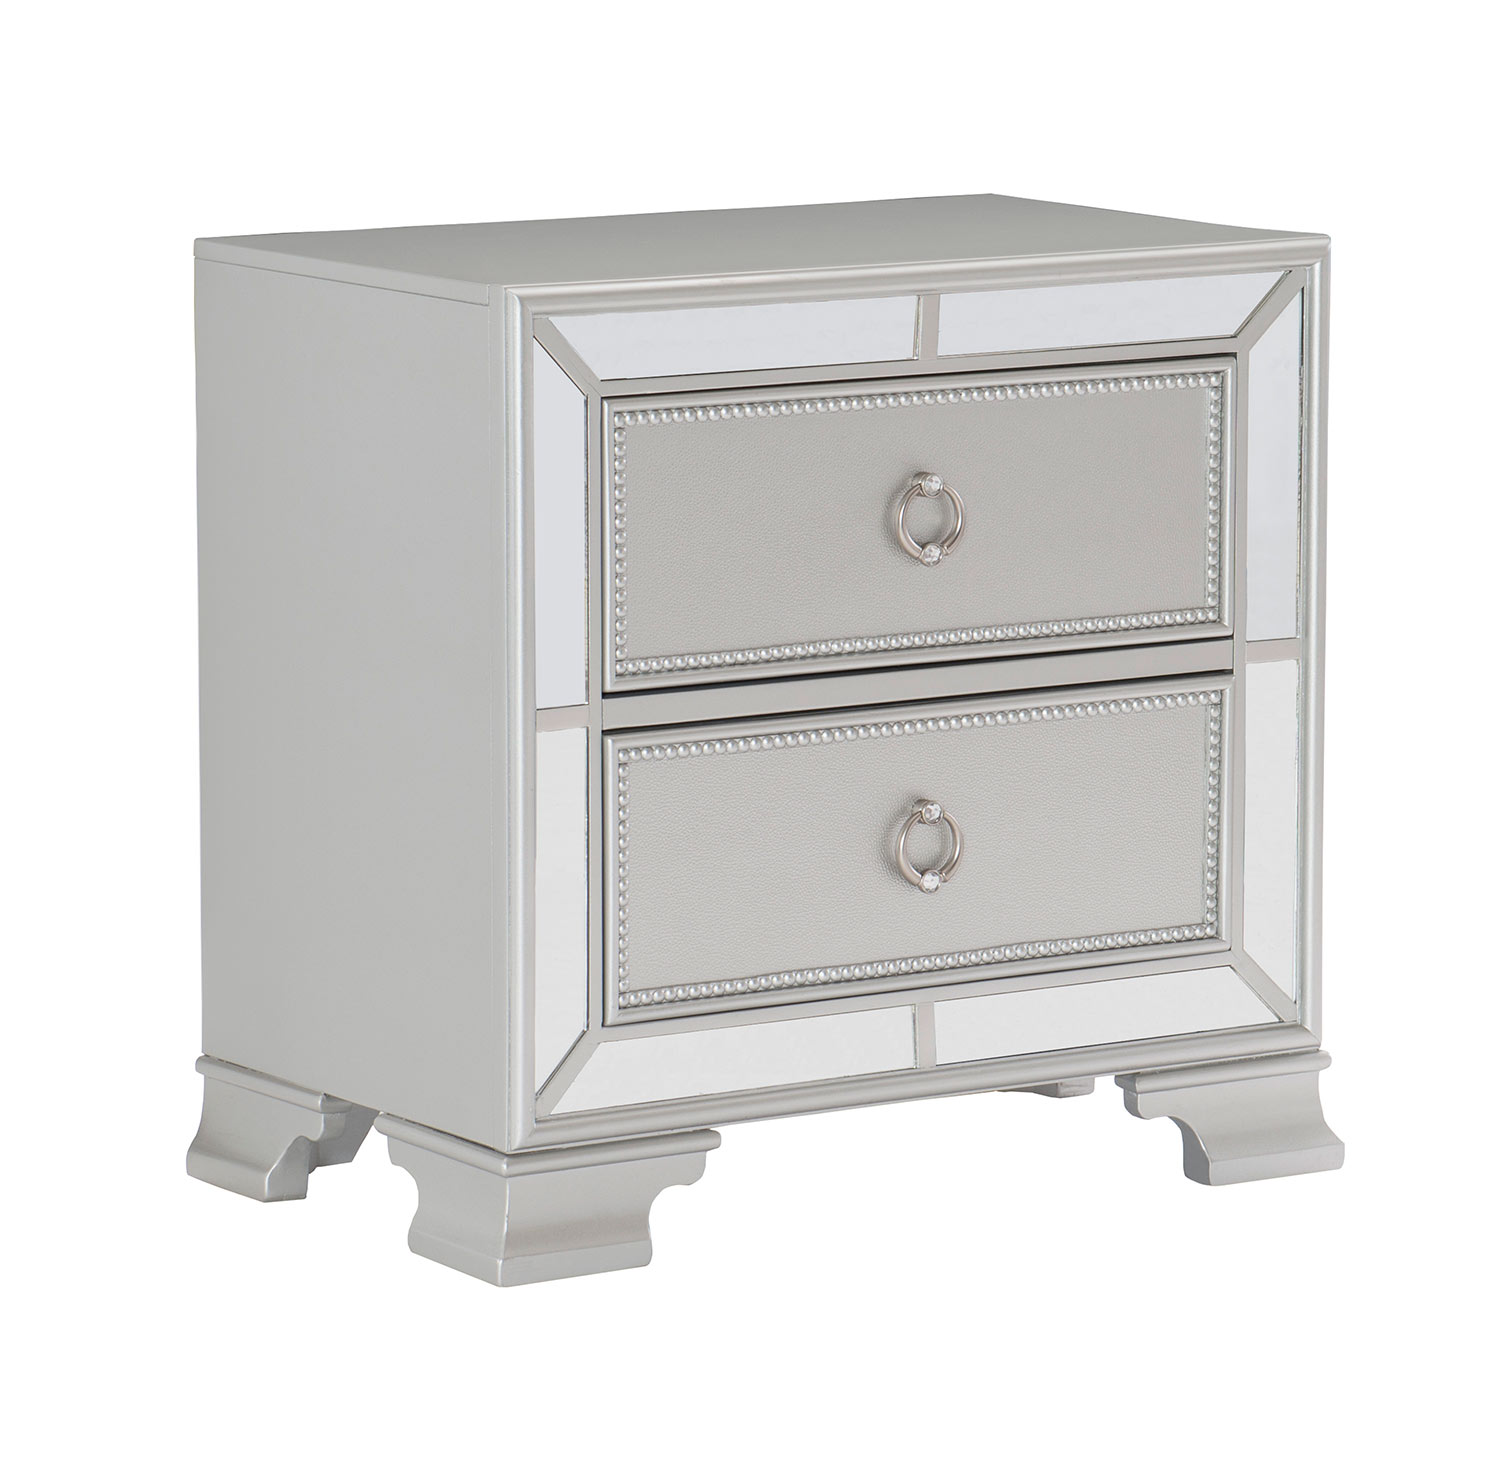 Homelegance Avondale Night Stand - Silver